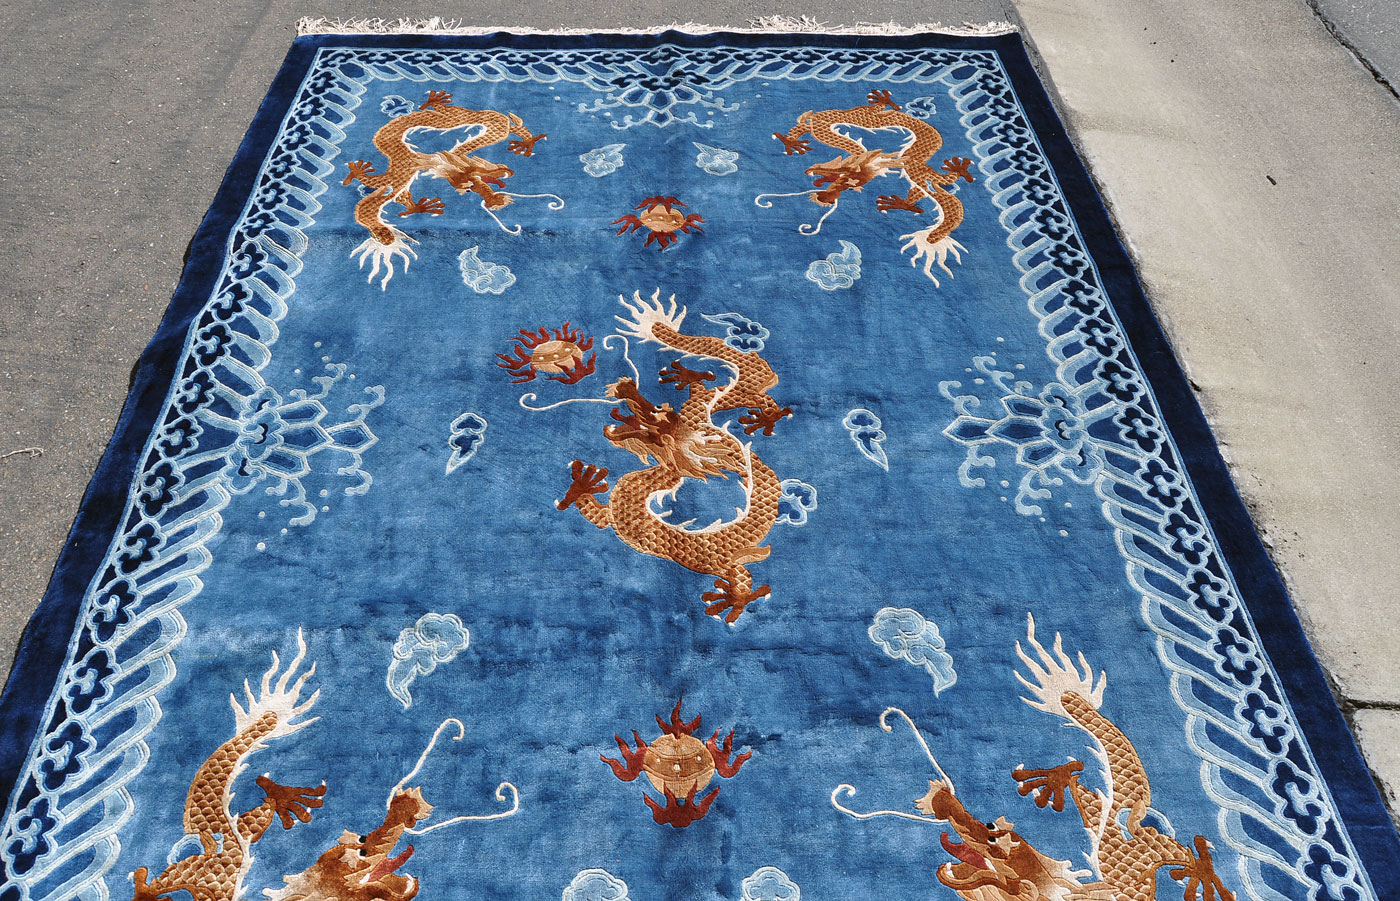 Large Chinese Silk Dragon Rug 9 Ft 7 In By 6 Ft 1 In